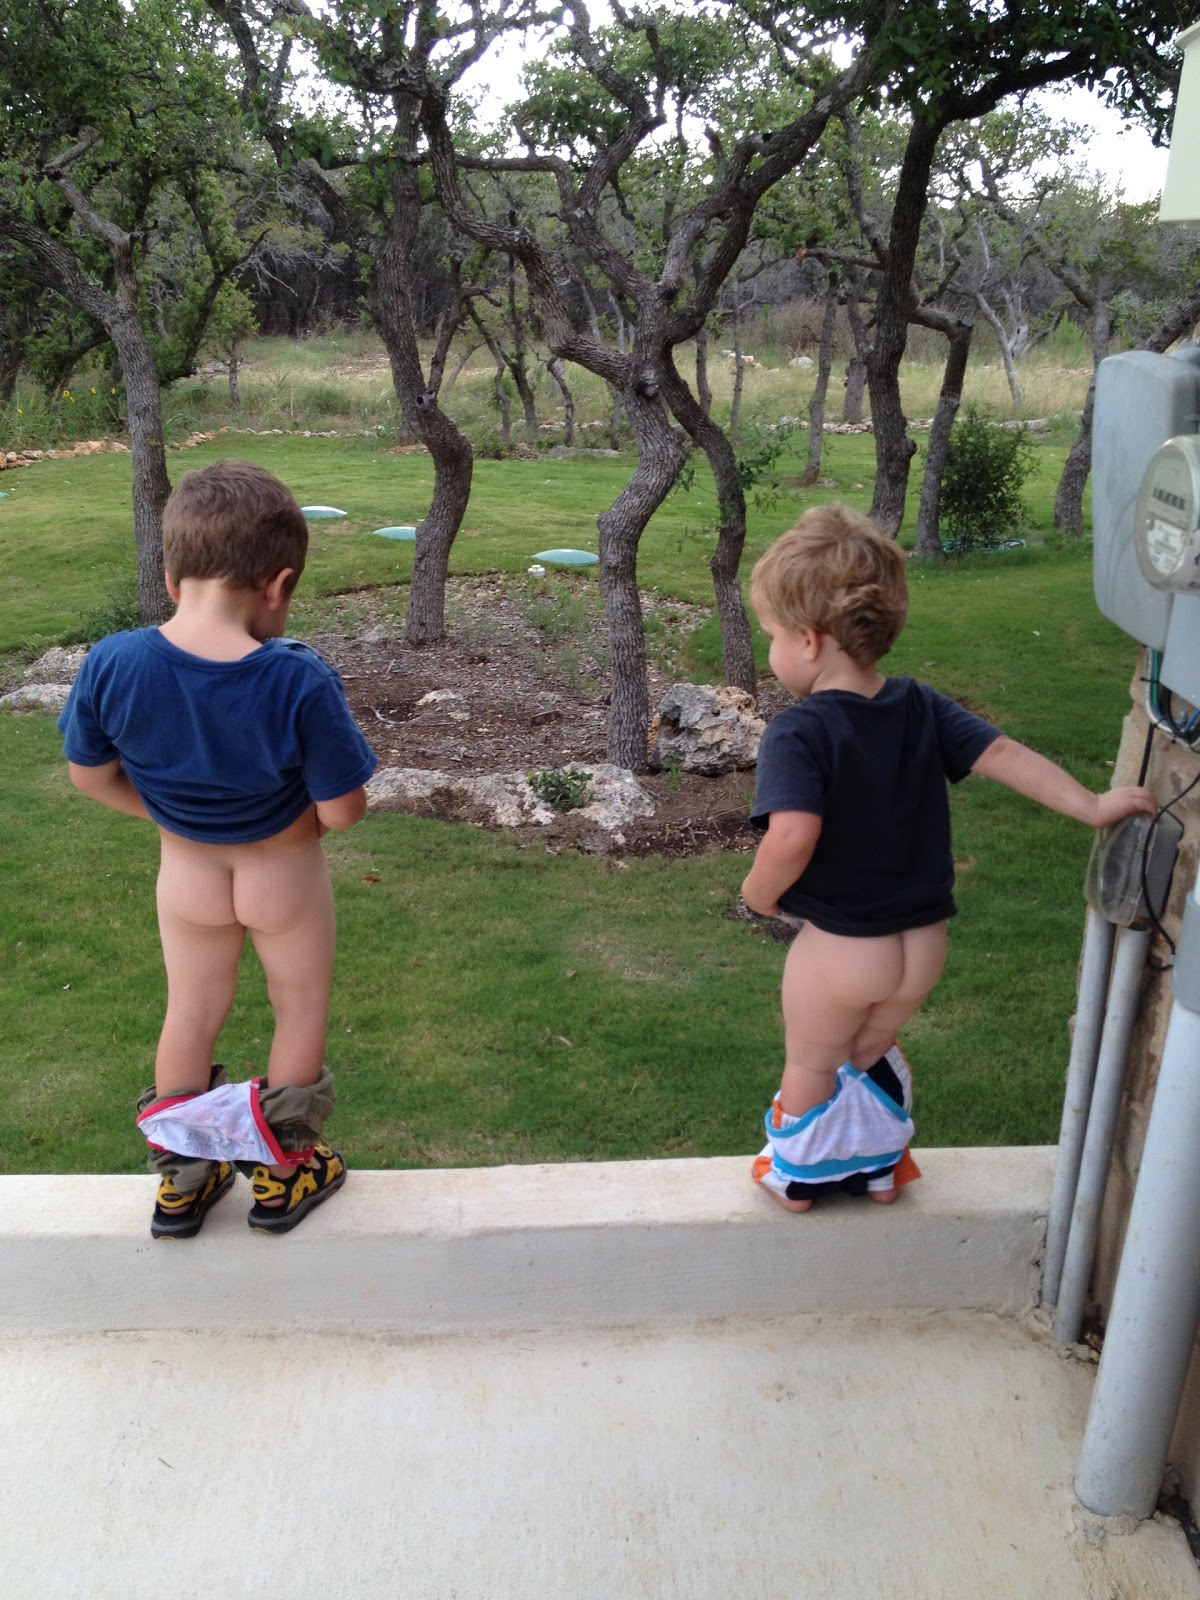 the boys going peepeeing little boys: http://6gazo.ebb.jp/the+boys+going+pee/pic1.html